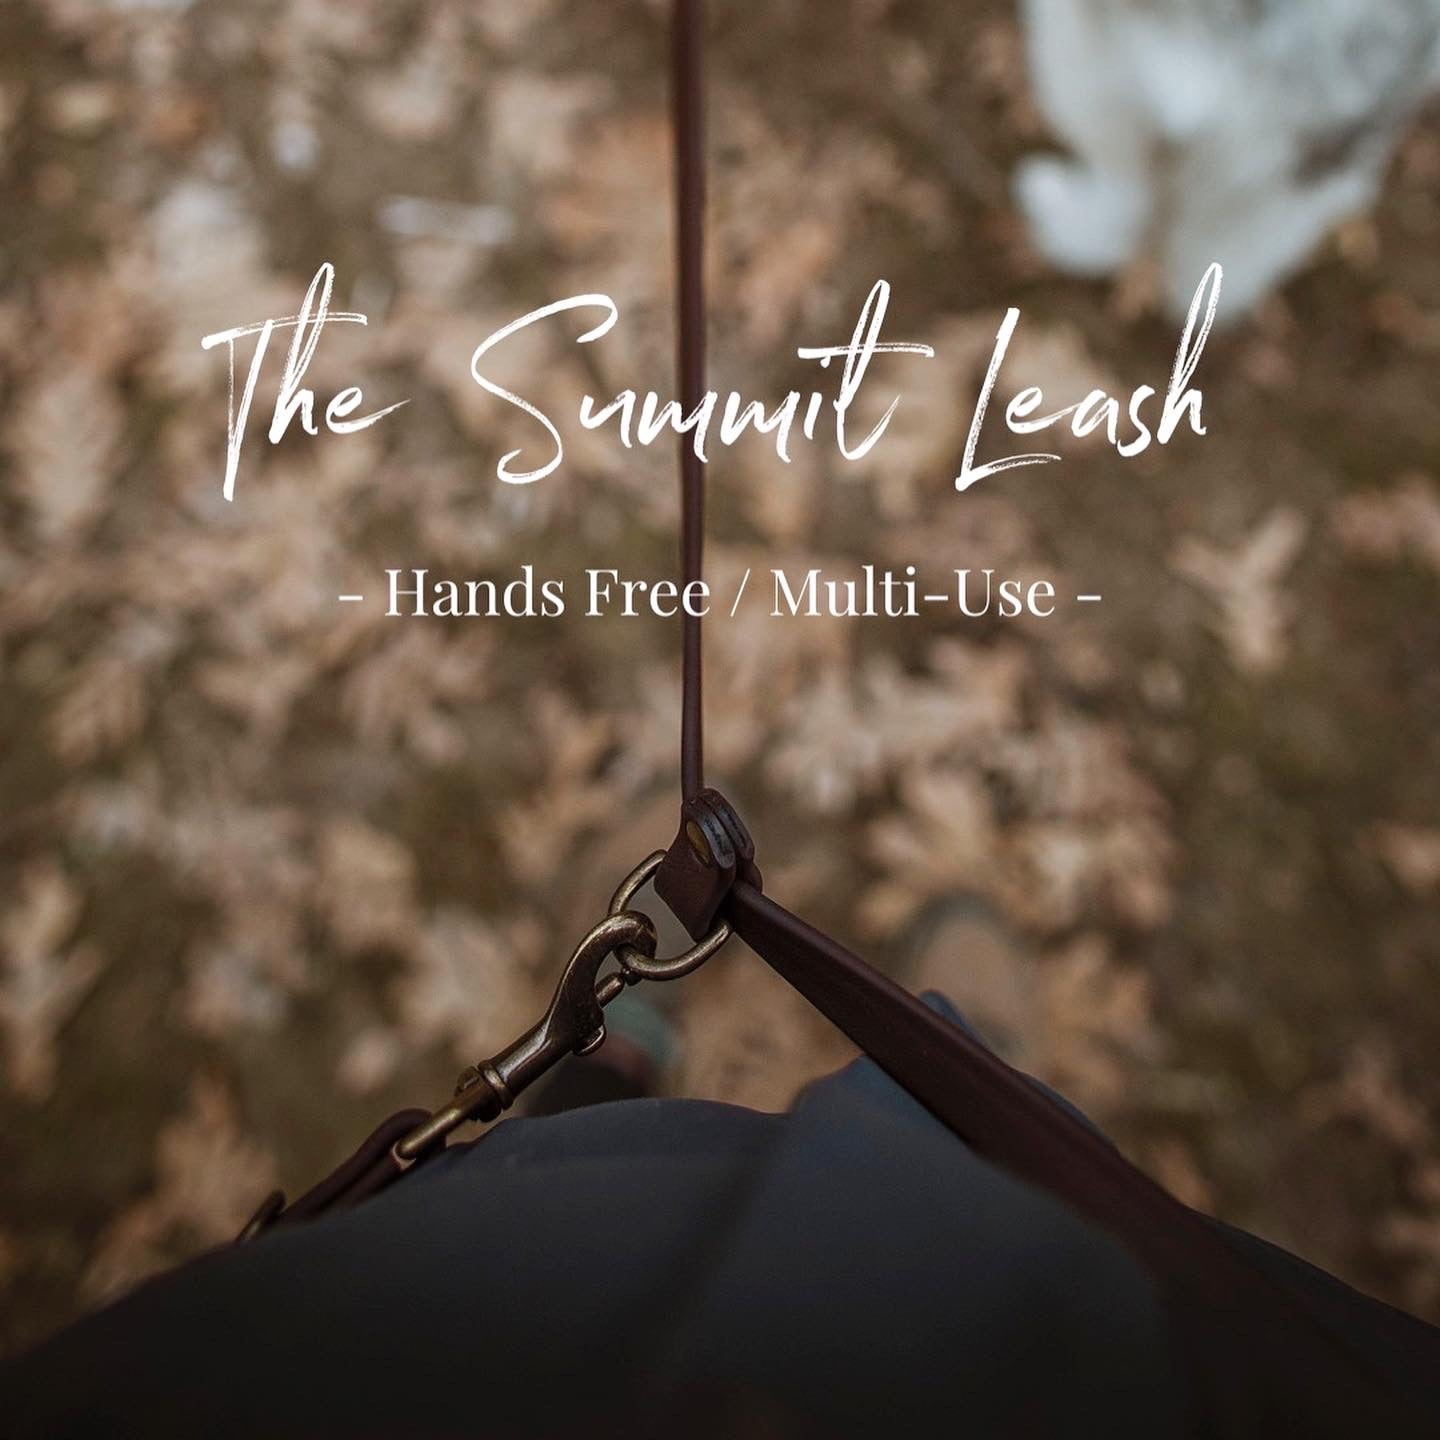 The Summit Leash / All-in-one + Hands Free - Solid Color